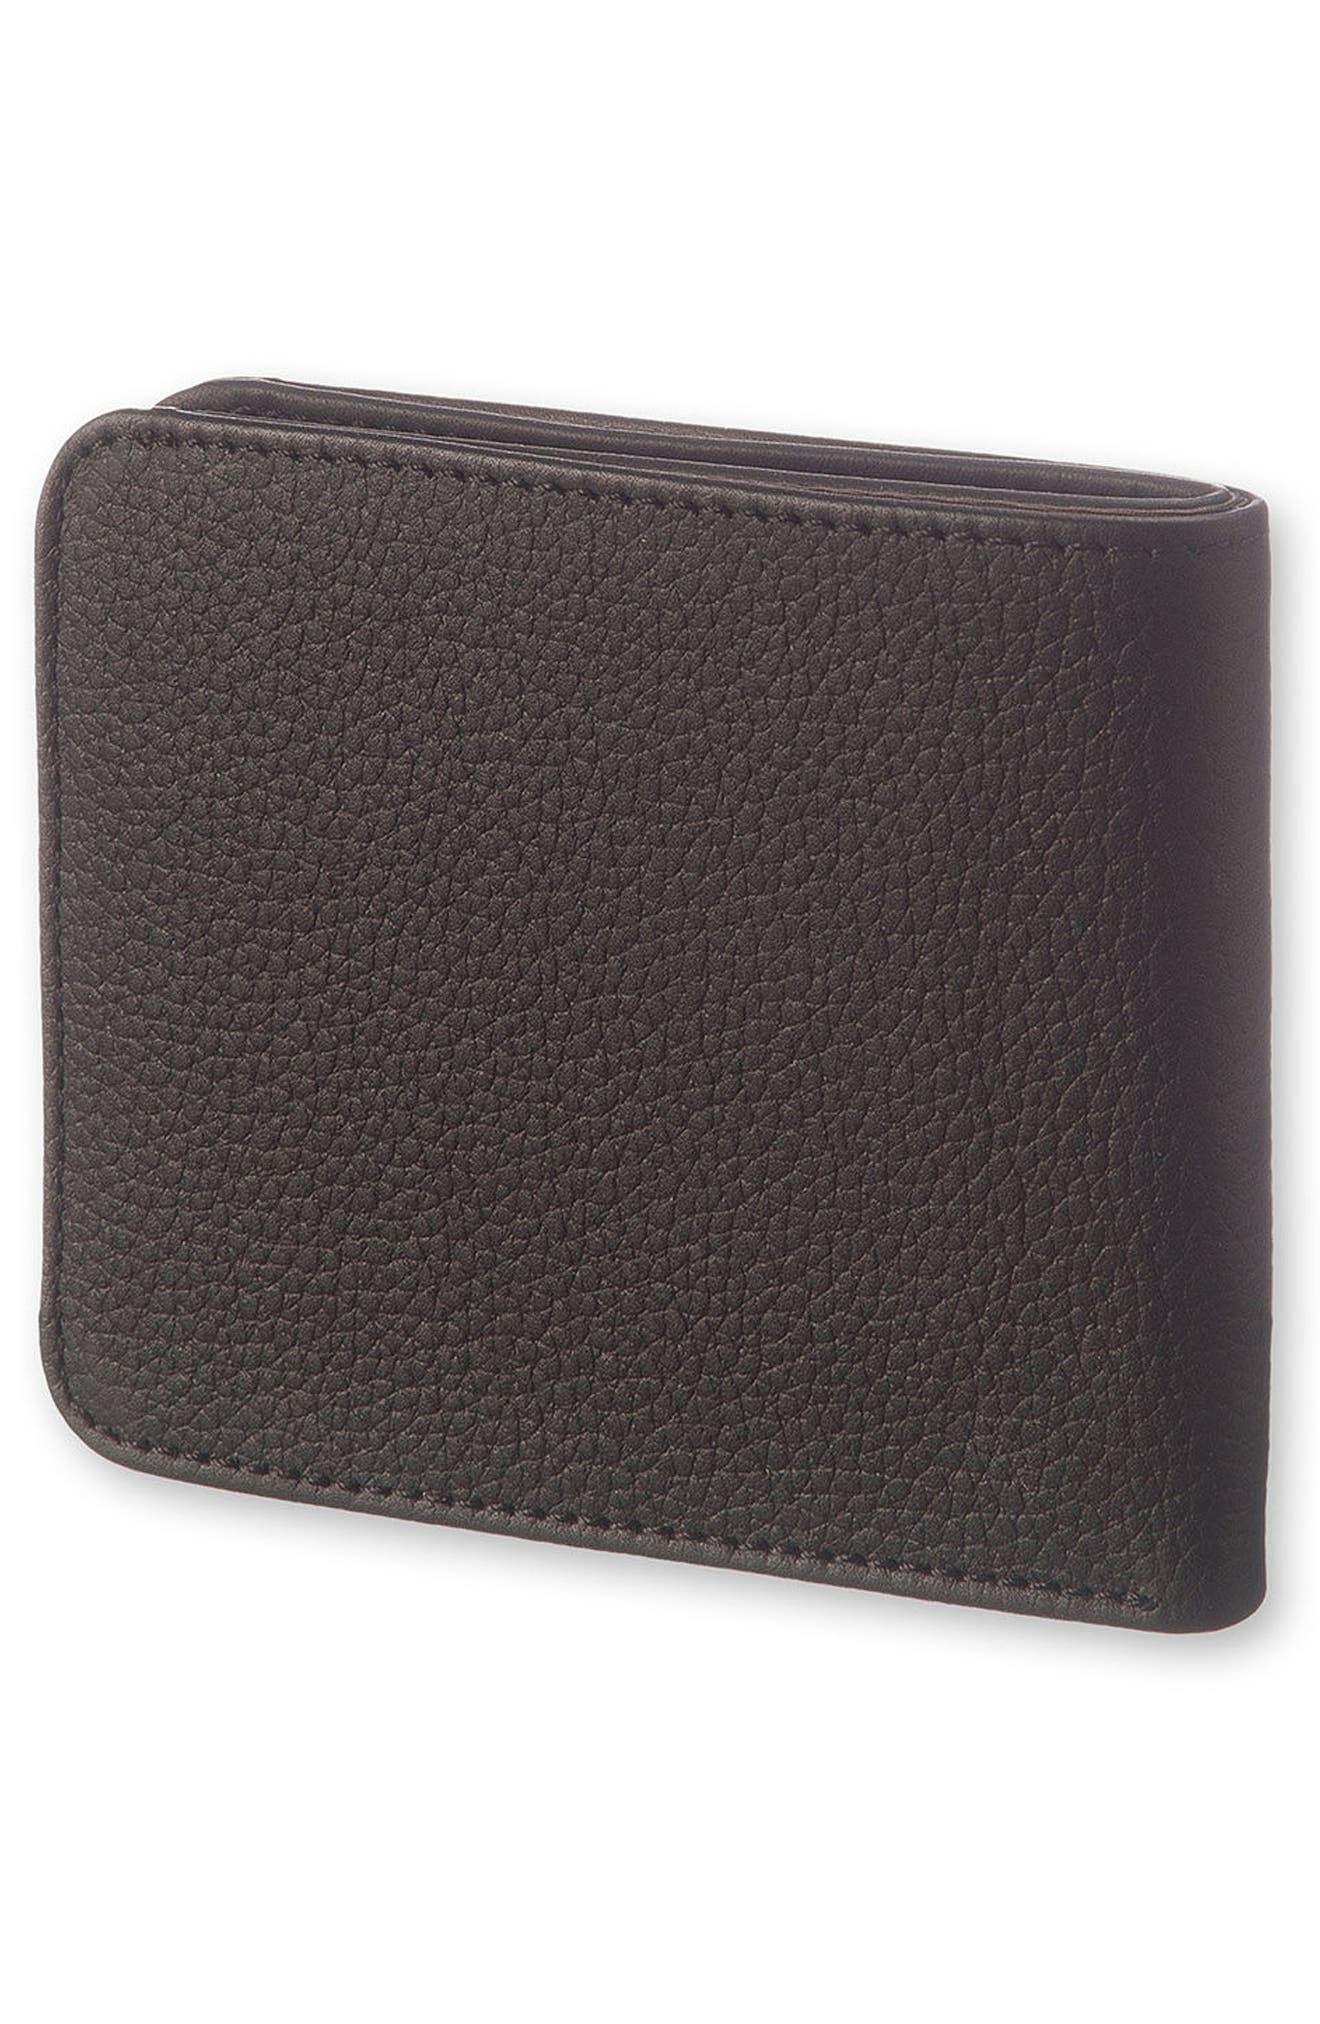 Lineage Leather Wallet,                             Alternate thumbnail 3, color,                             BLACK